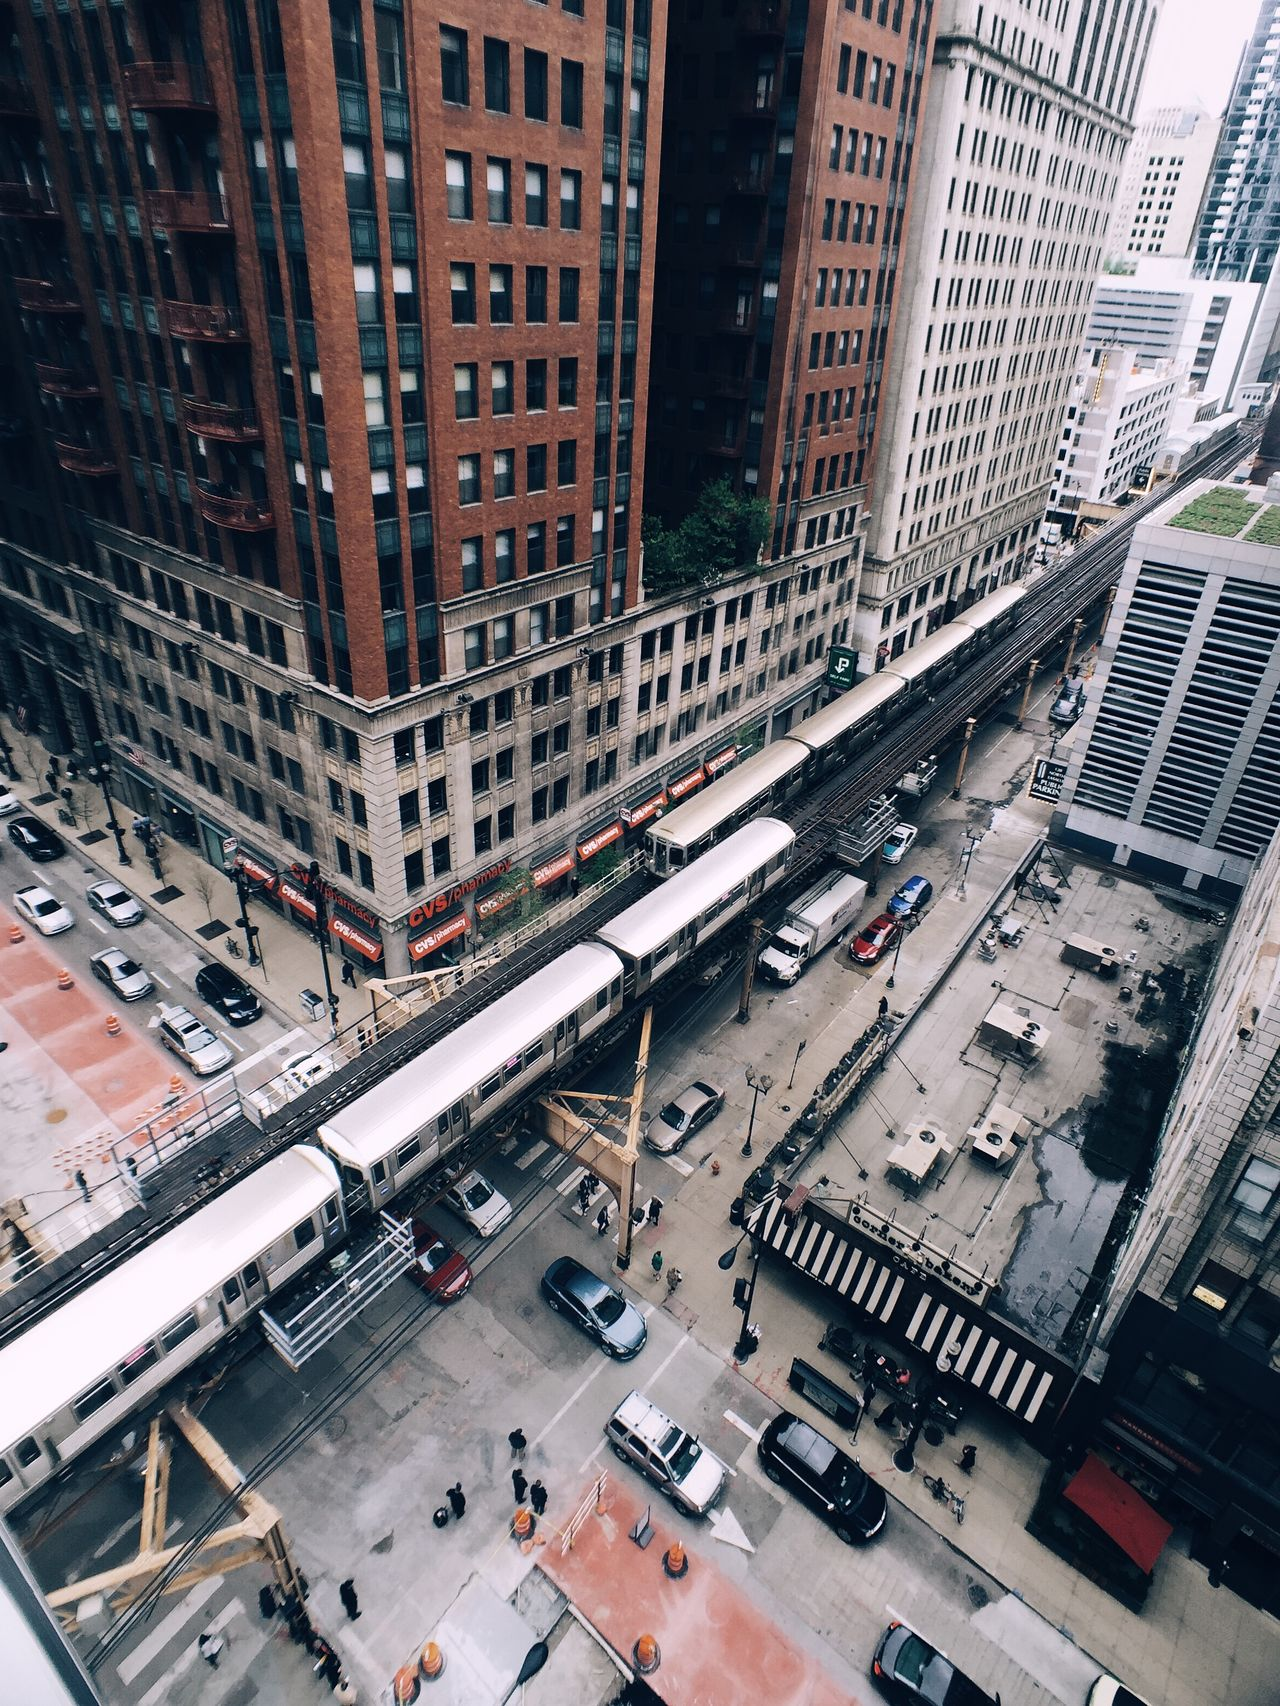 Chicago Looking Down MidWest Urban Landscape Streetphotography Cityscapes Train IPhoneography Vscocam Urbanexploration The Street Photographer - 2016 EyeEm Awards